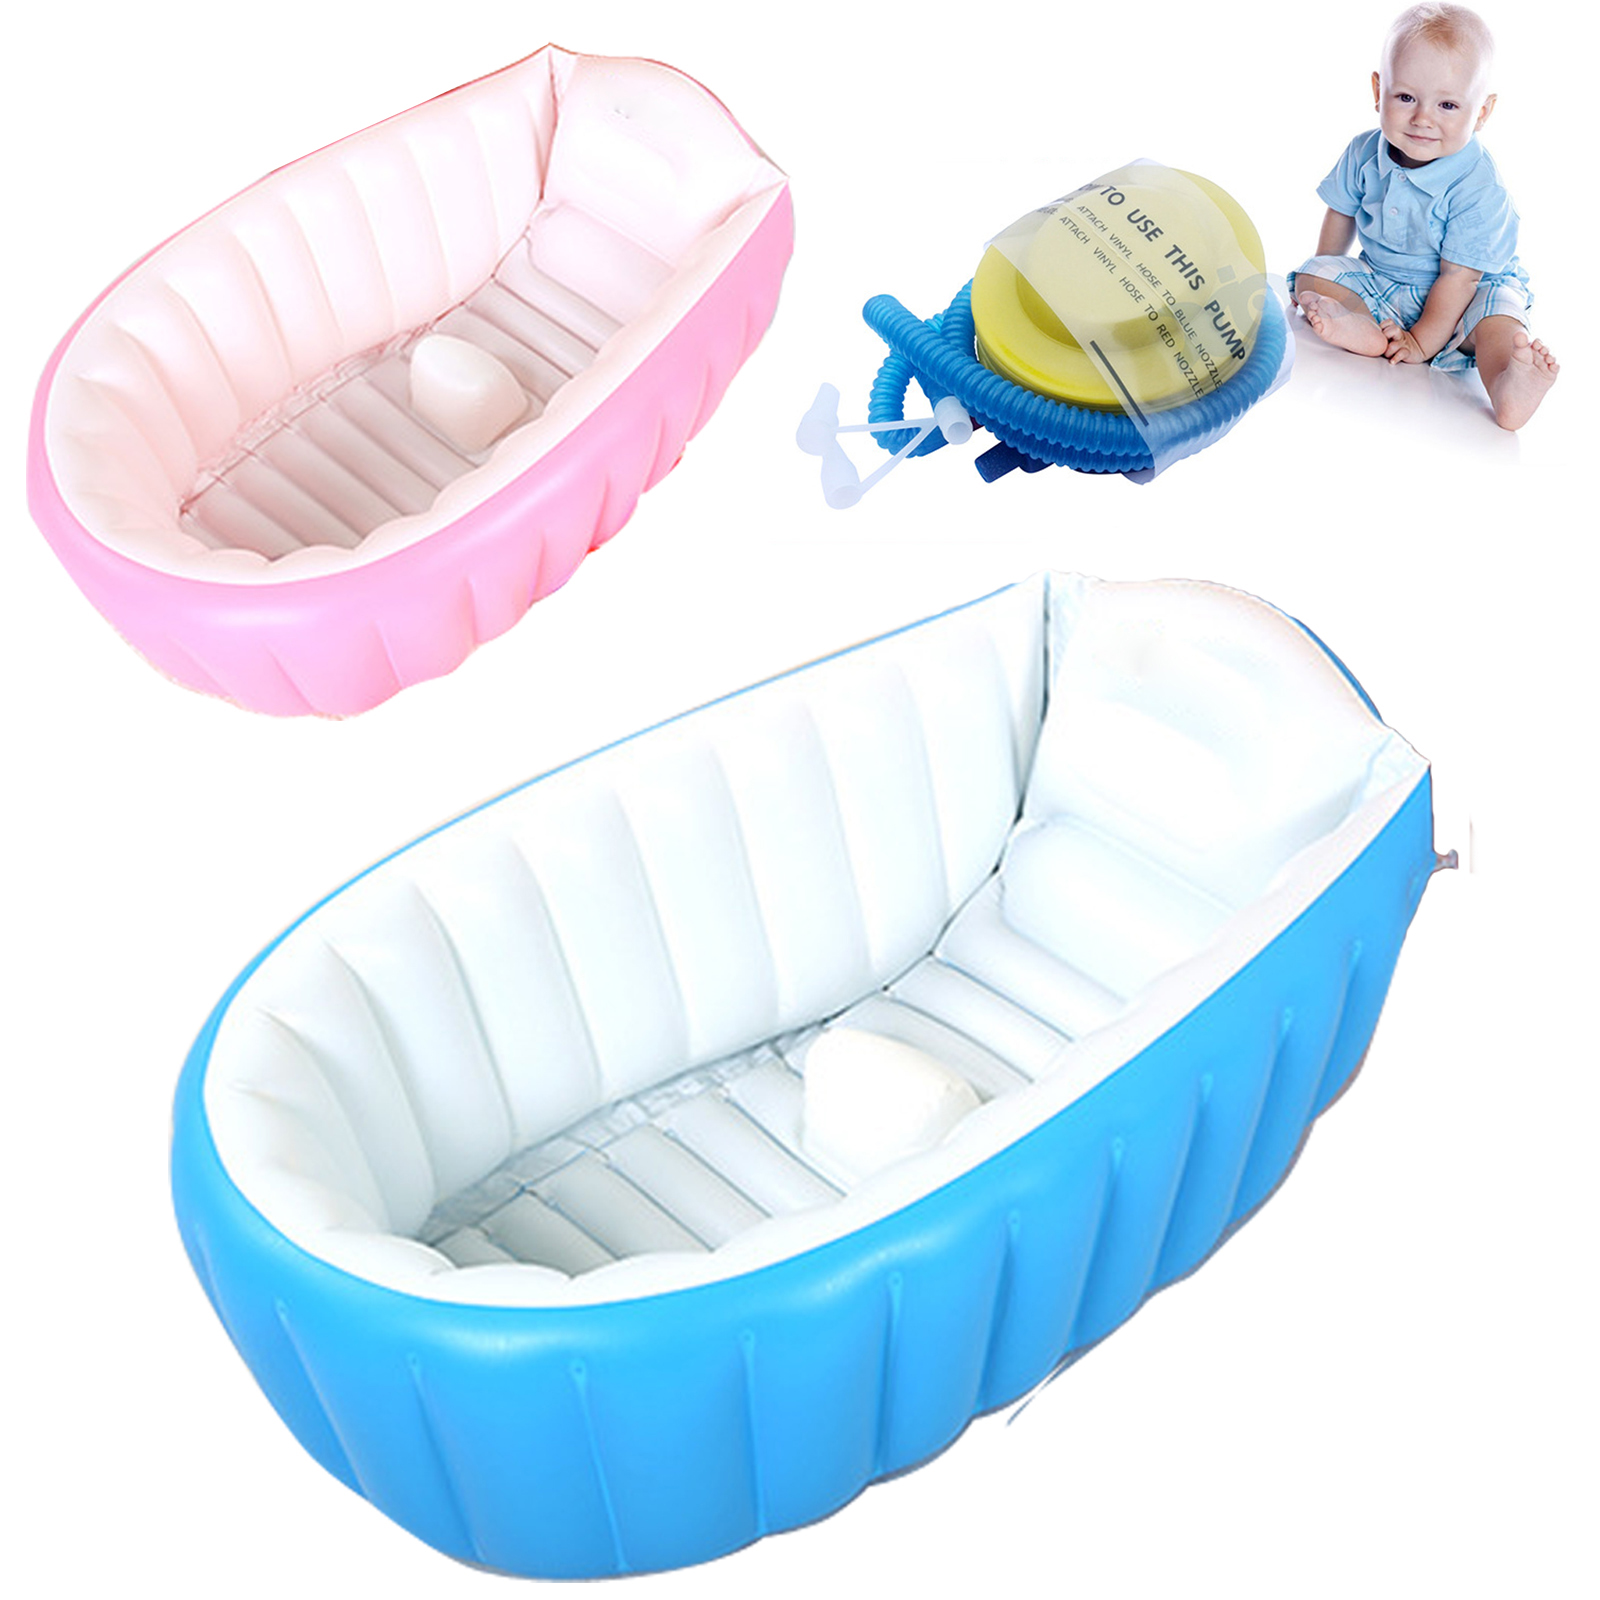 2017 Real Top Fashion Baby Ring Inflatable Tubs Infant Inflatable Swimming  Pool Baby Tub/soft